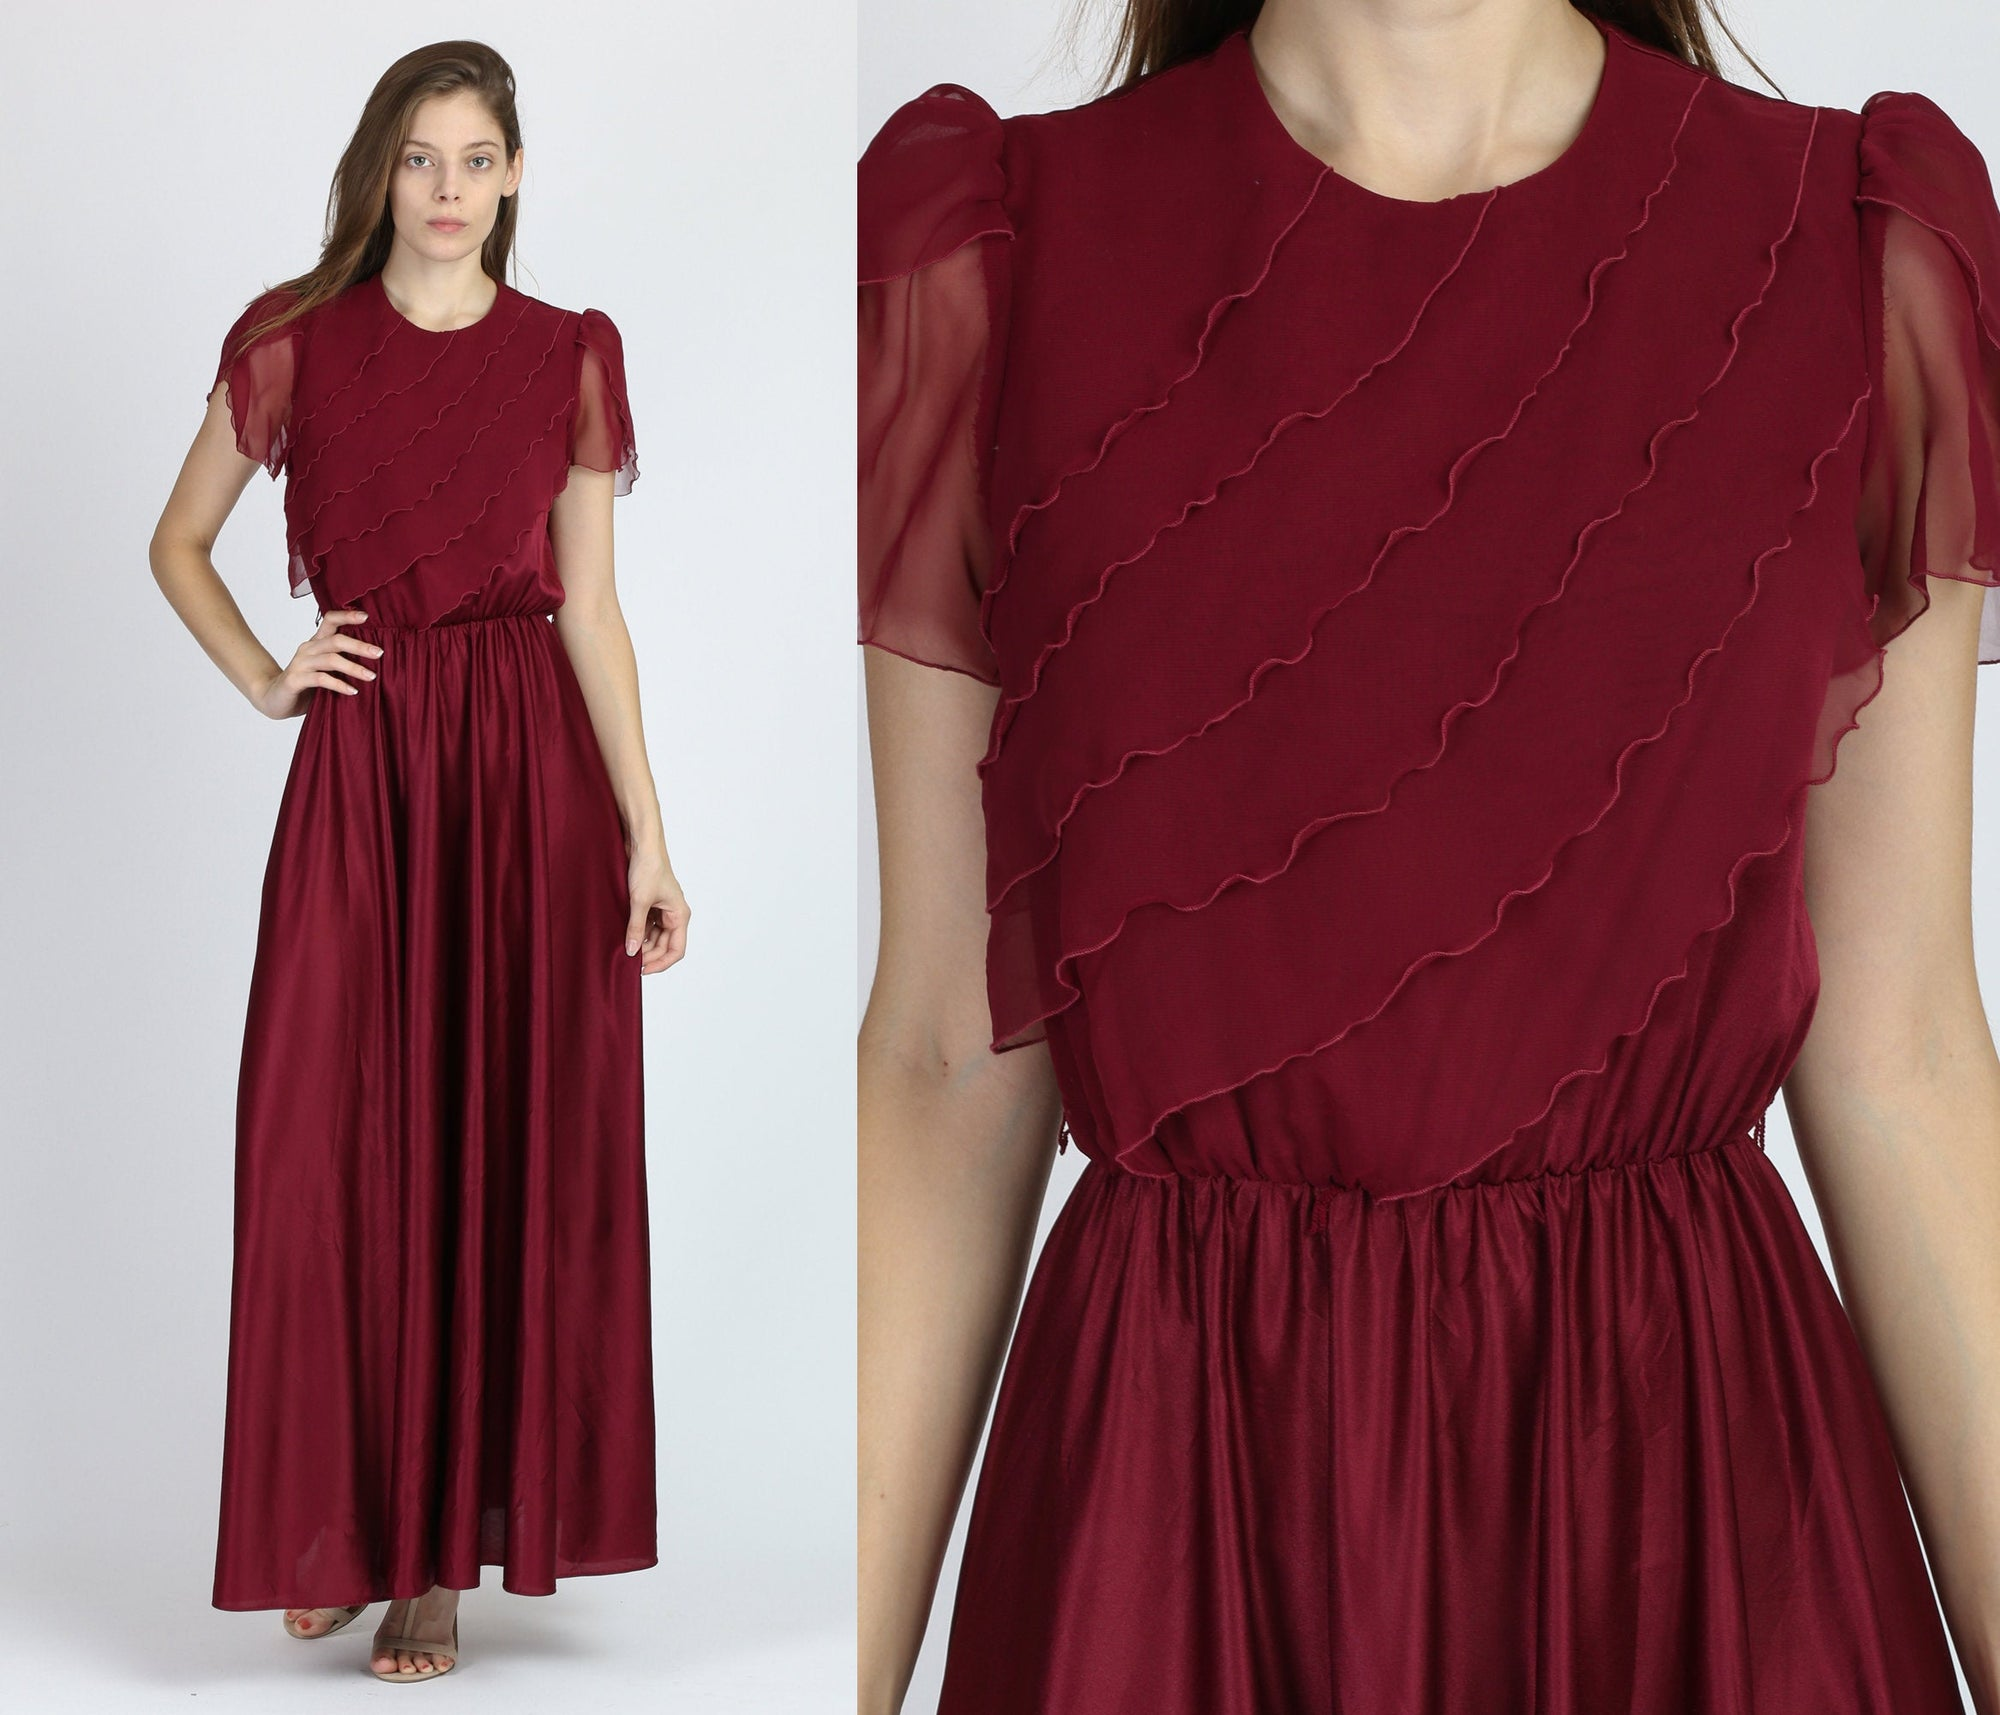 70s Boho Maroon Disco Gown - Small to Medium